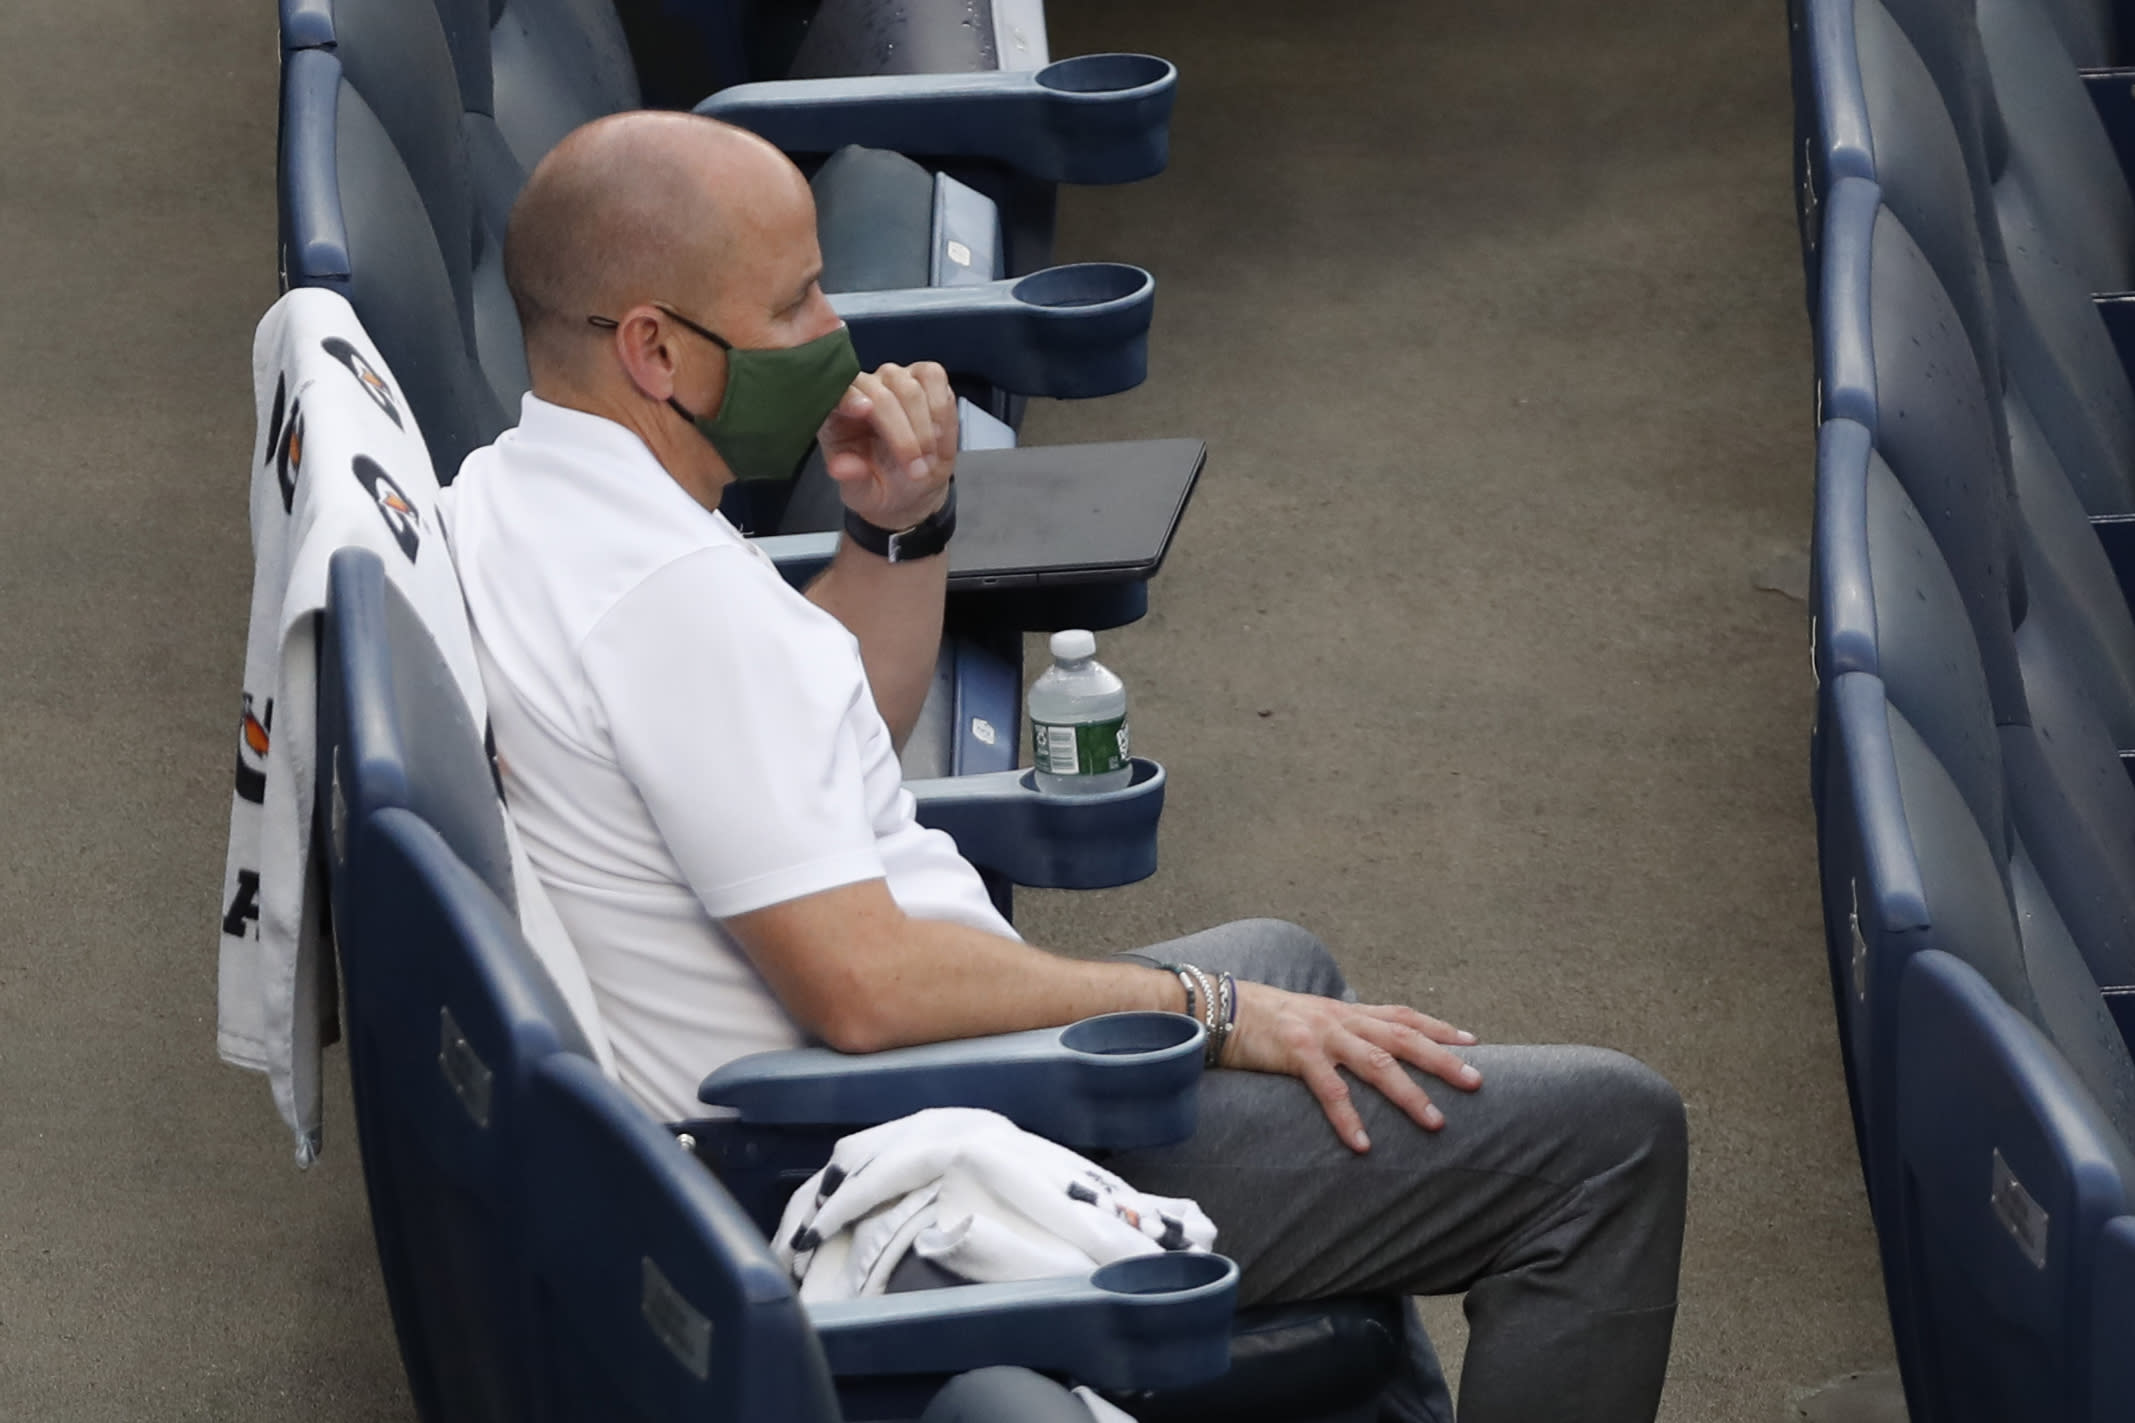 New York Yankees general manager Brian Cashman watches the baseball team's intrasquad game Monday, July 6, 2020, at Yankee Stadium in New York. (AP Photo/Kathy Willens)